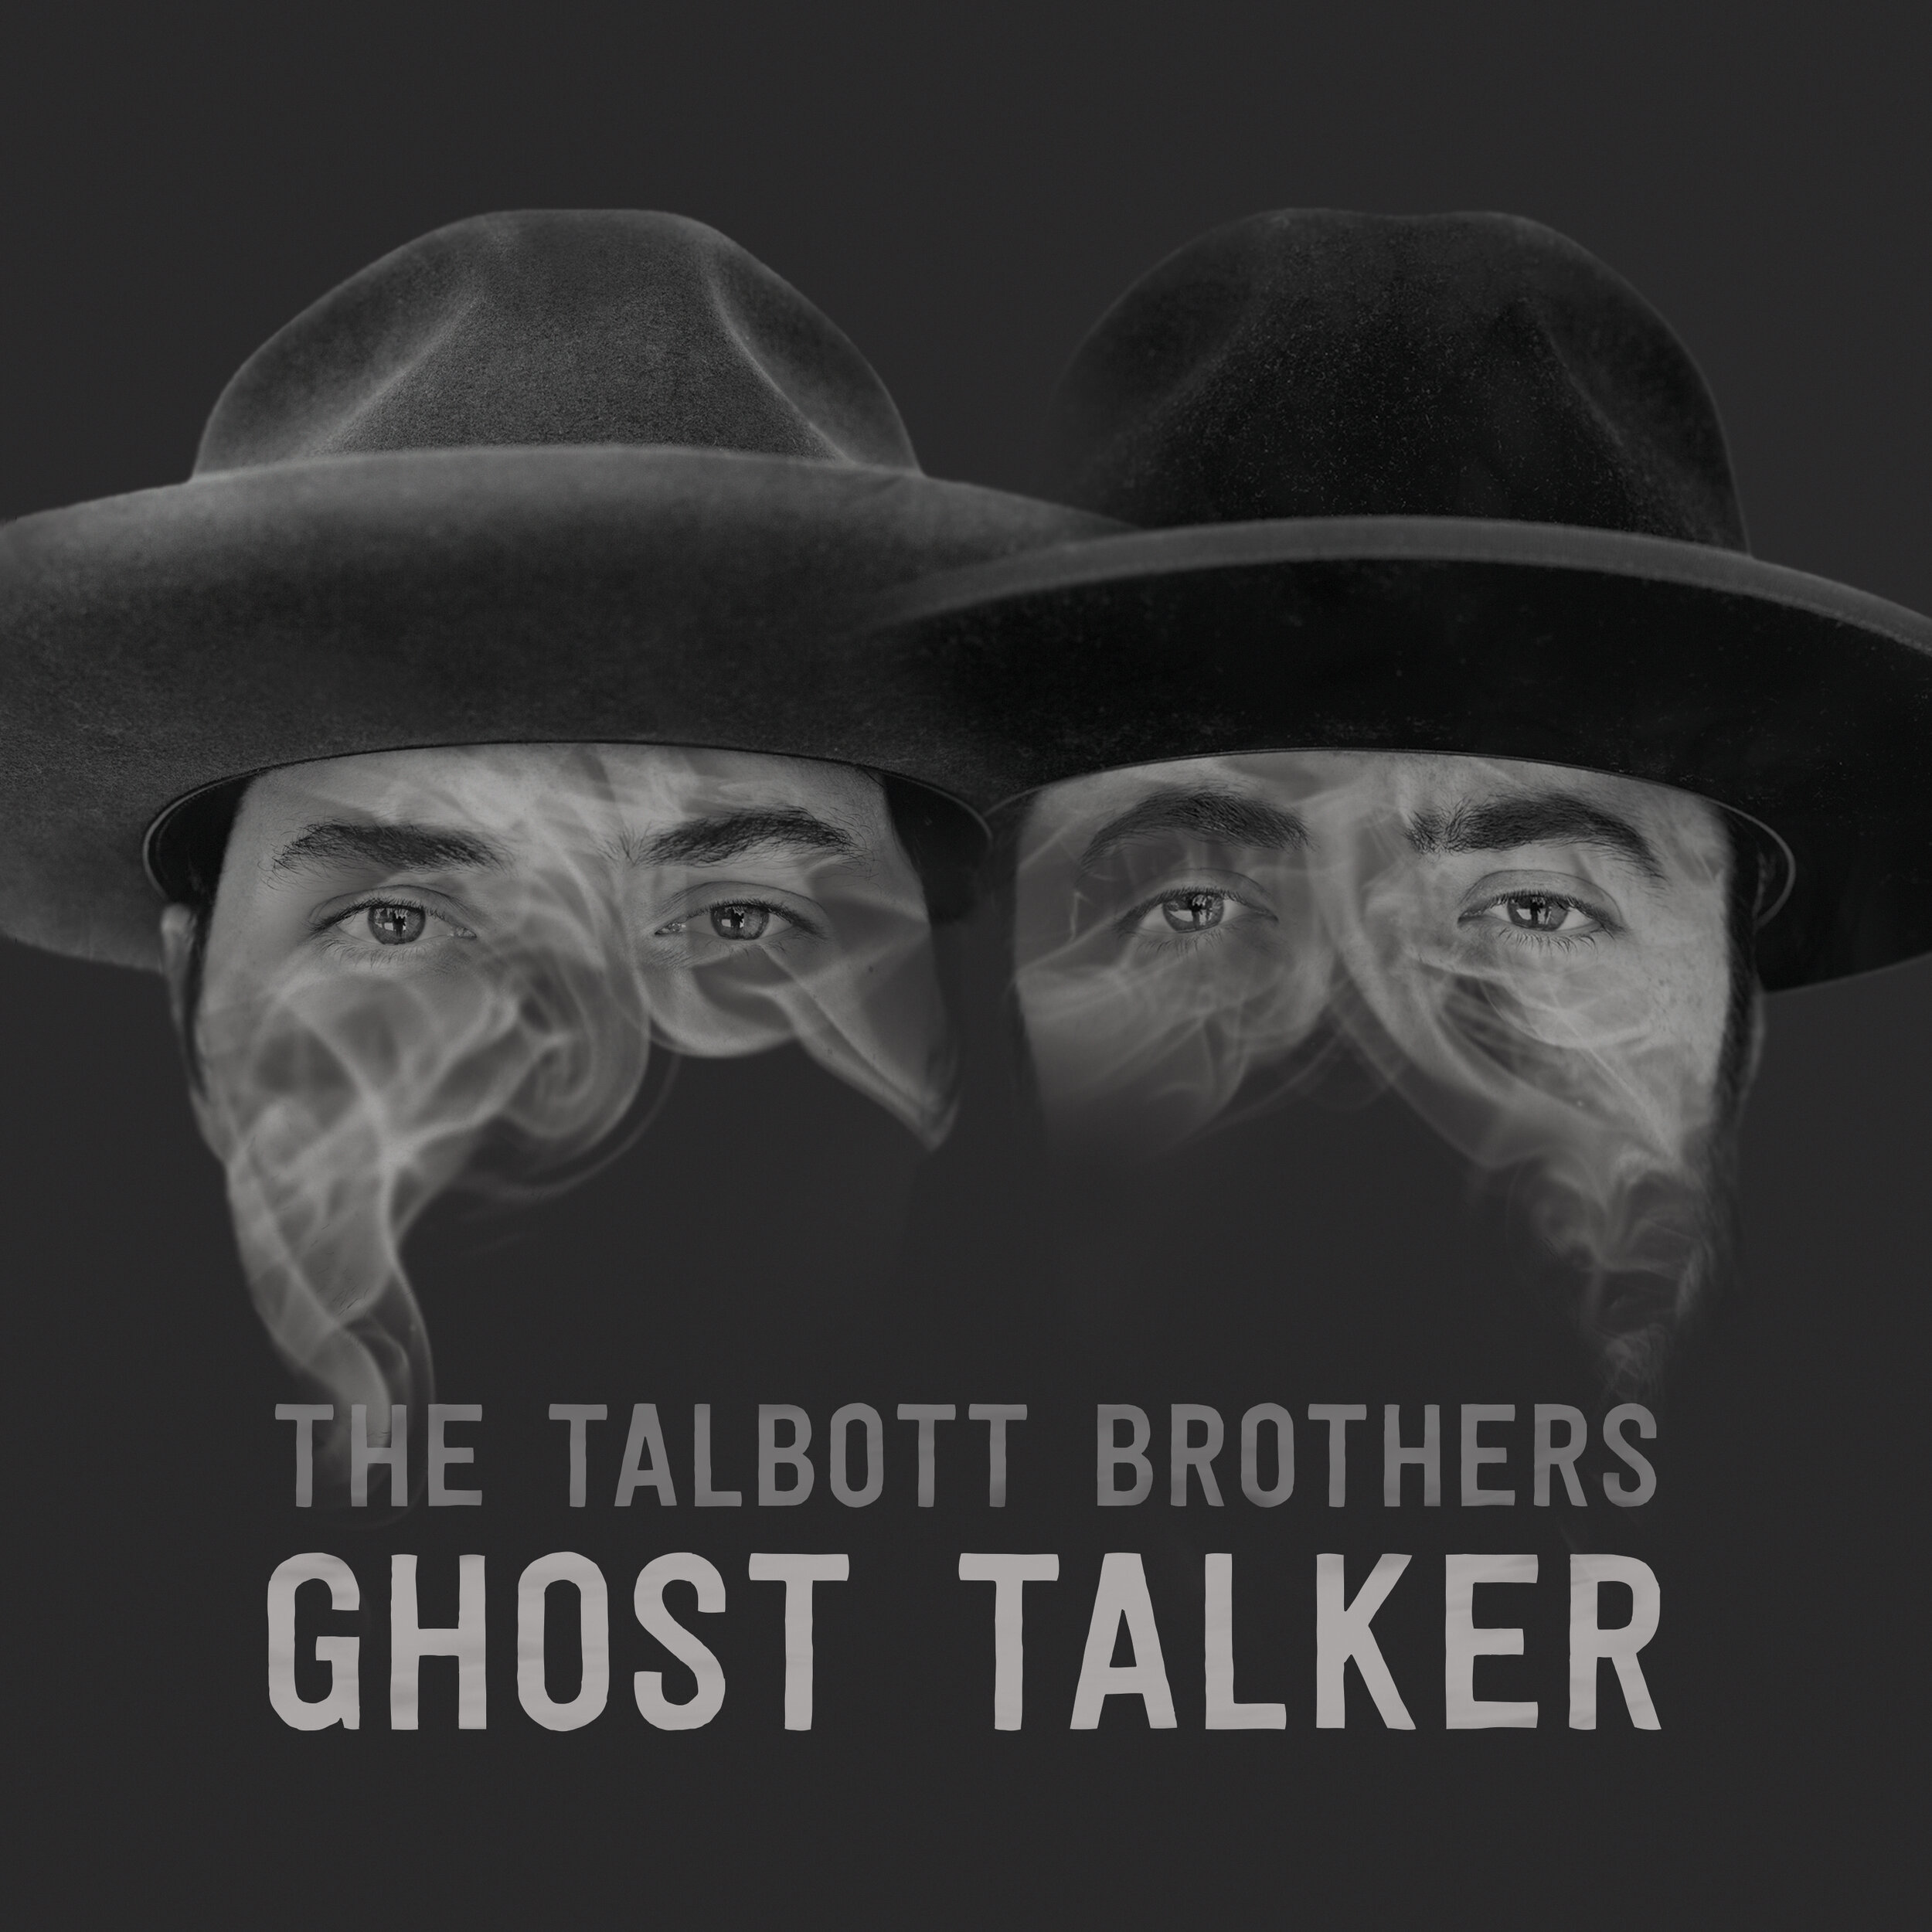 Ghost Talker The Talbott Brothers